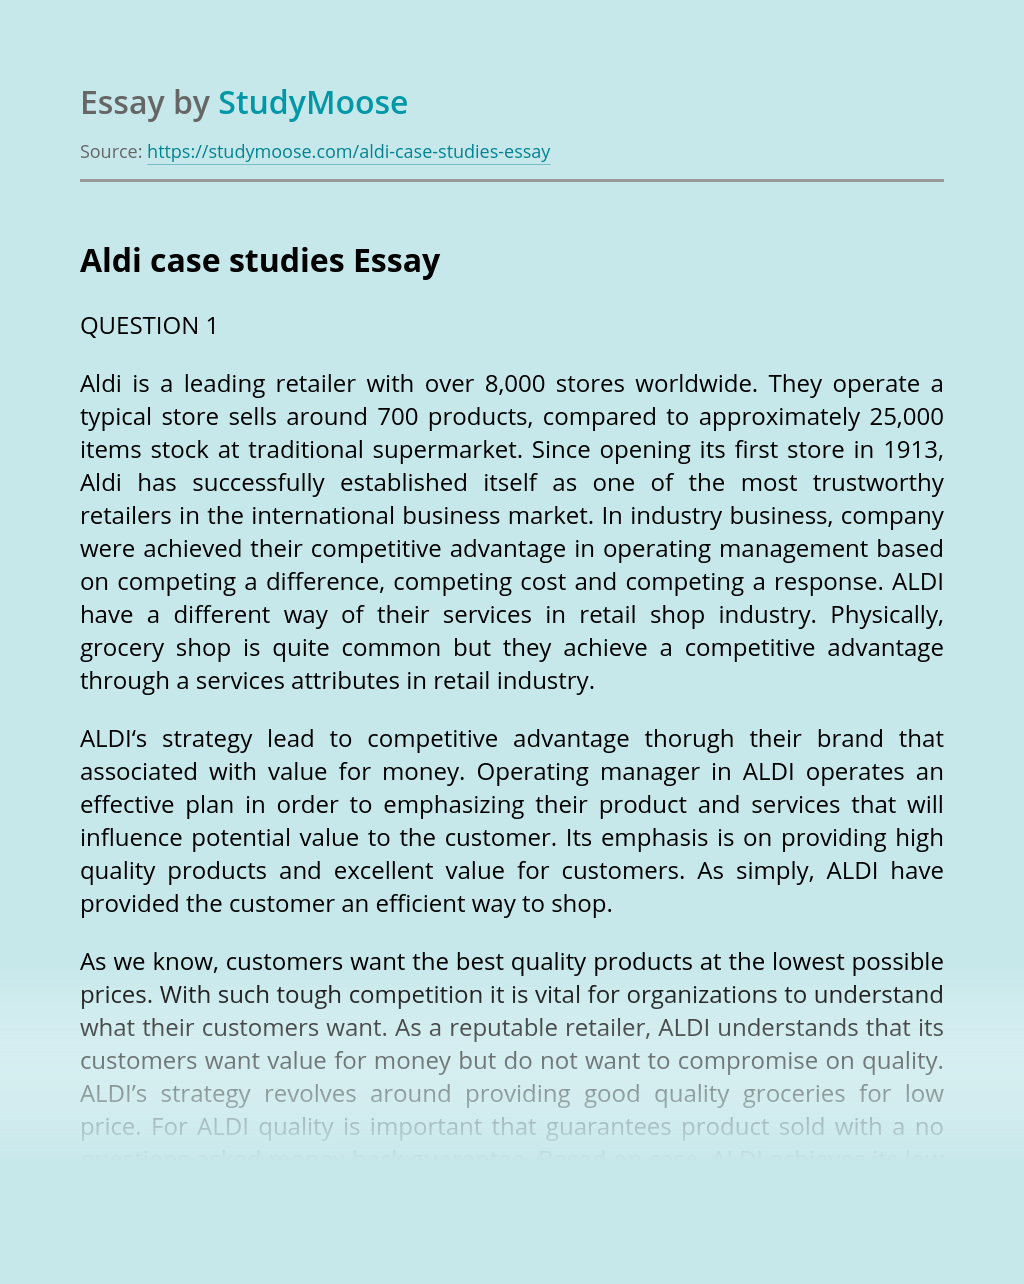 Aldi case studies